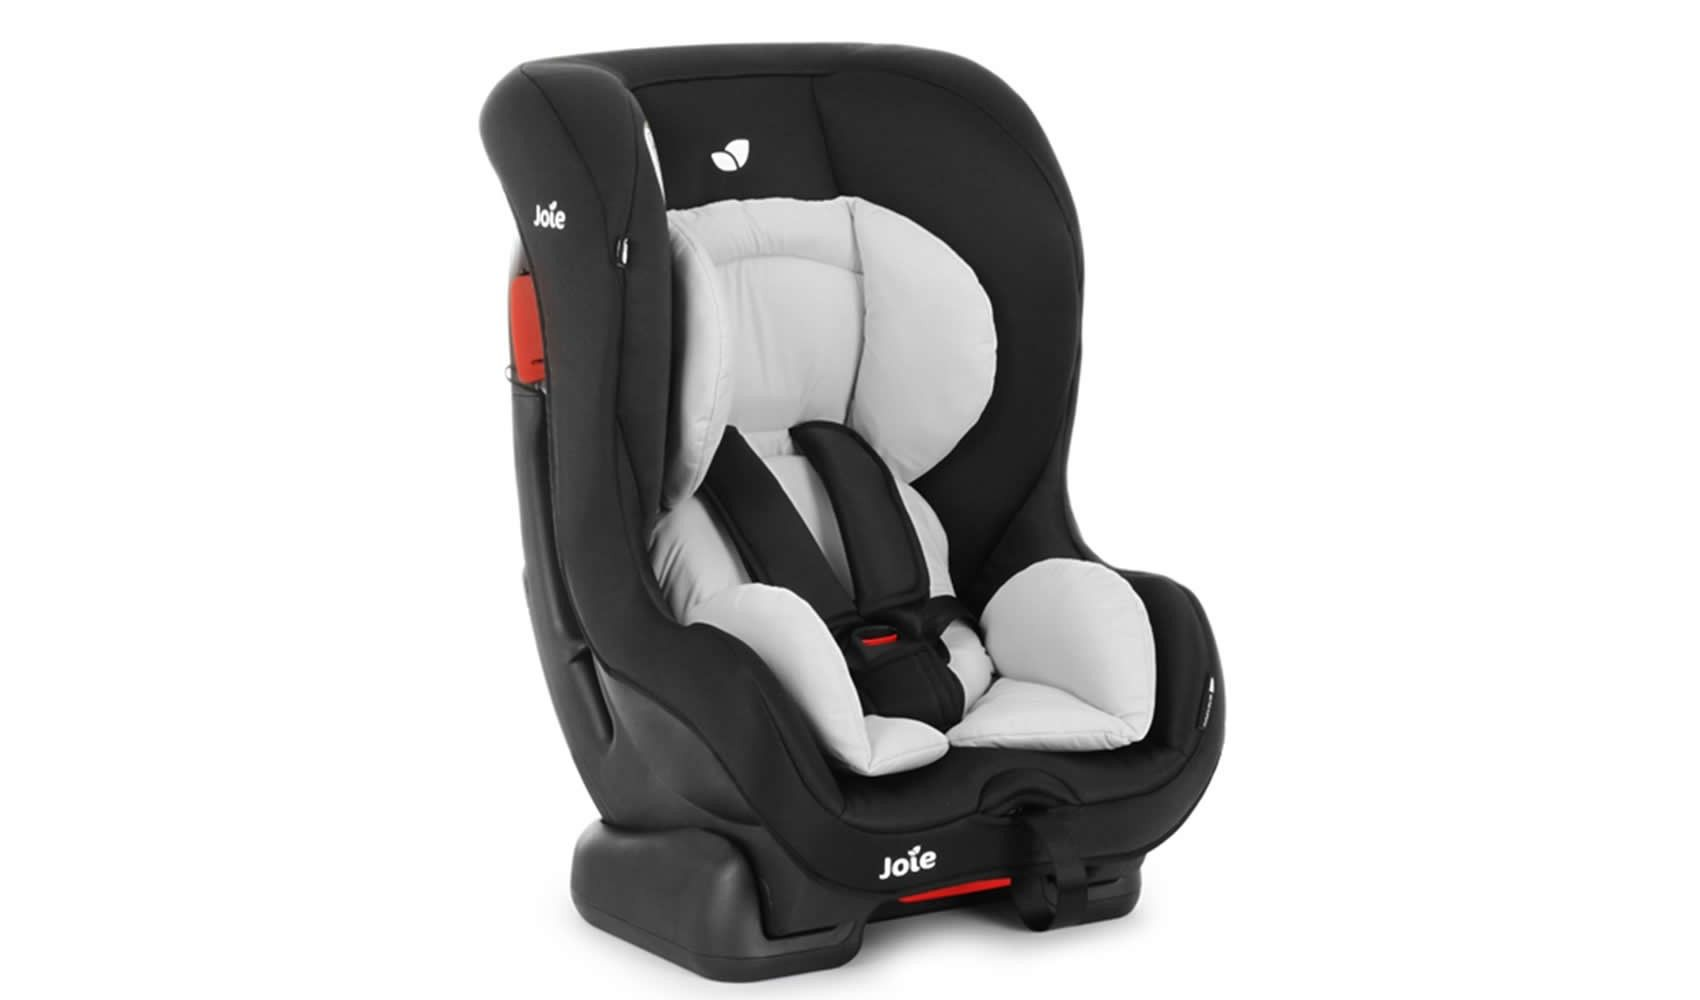 20+ Car seat baby joie ideas in 2021